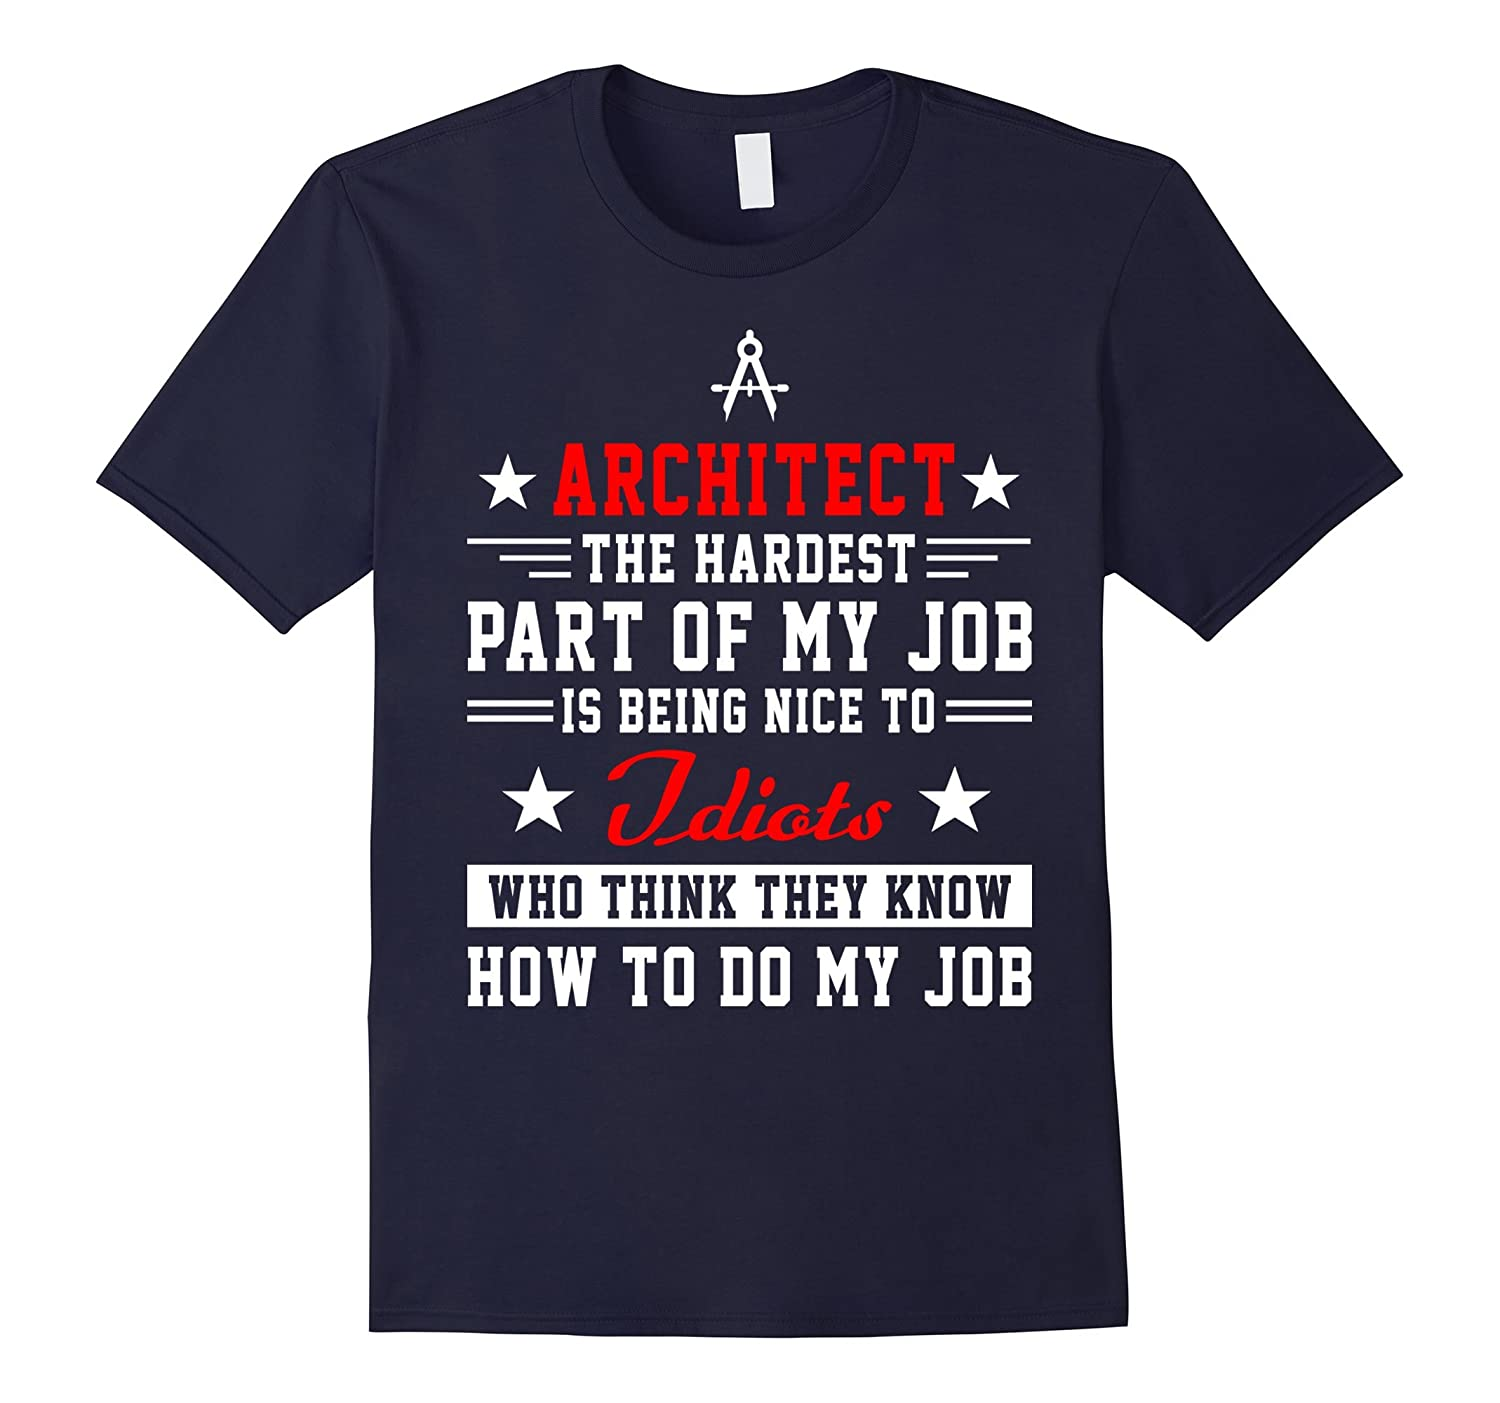 Architect Shirt - Hardest of My Job is Being Nice to People-TJ